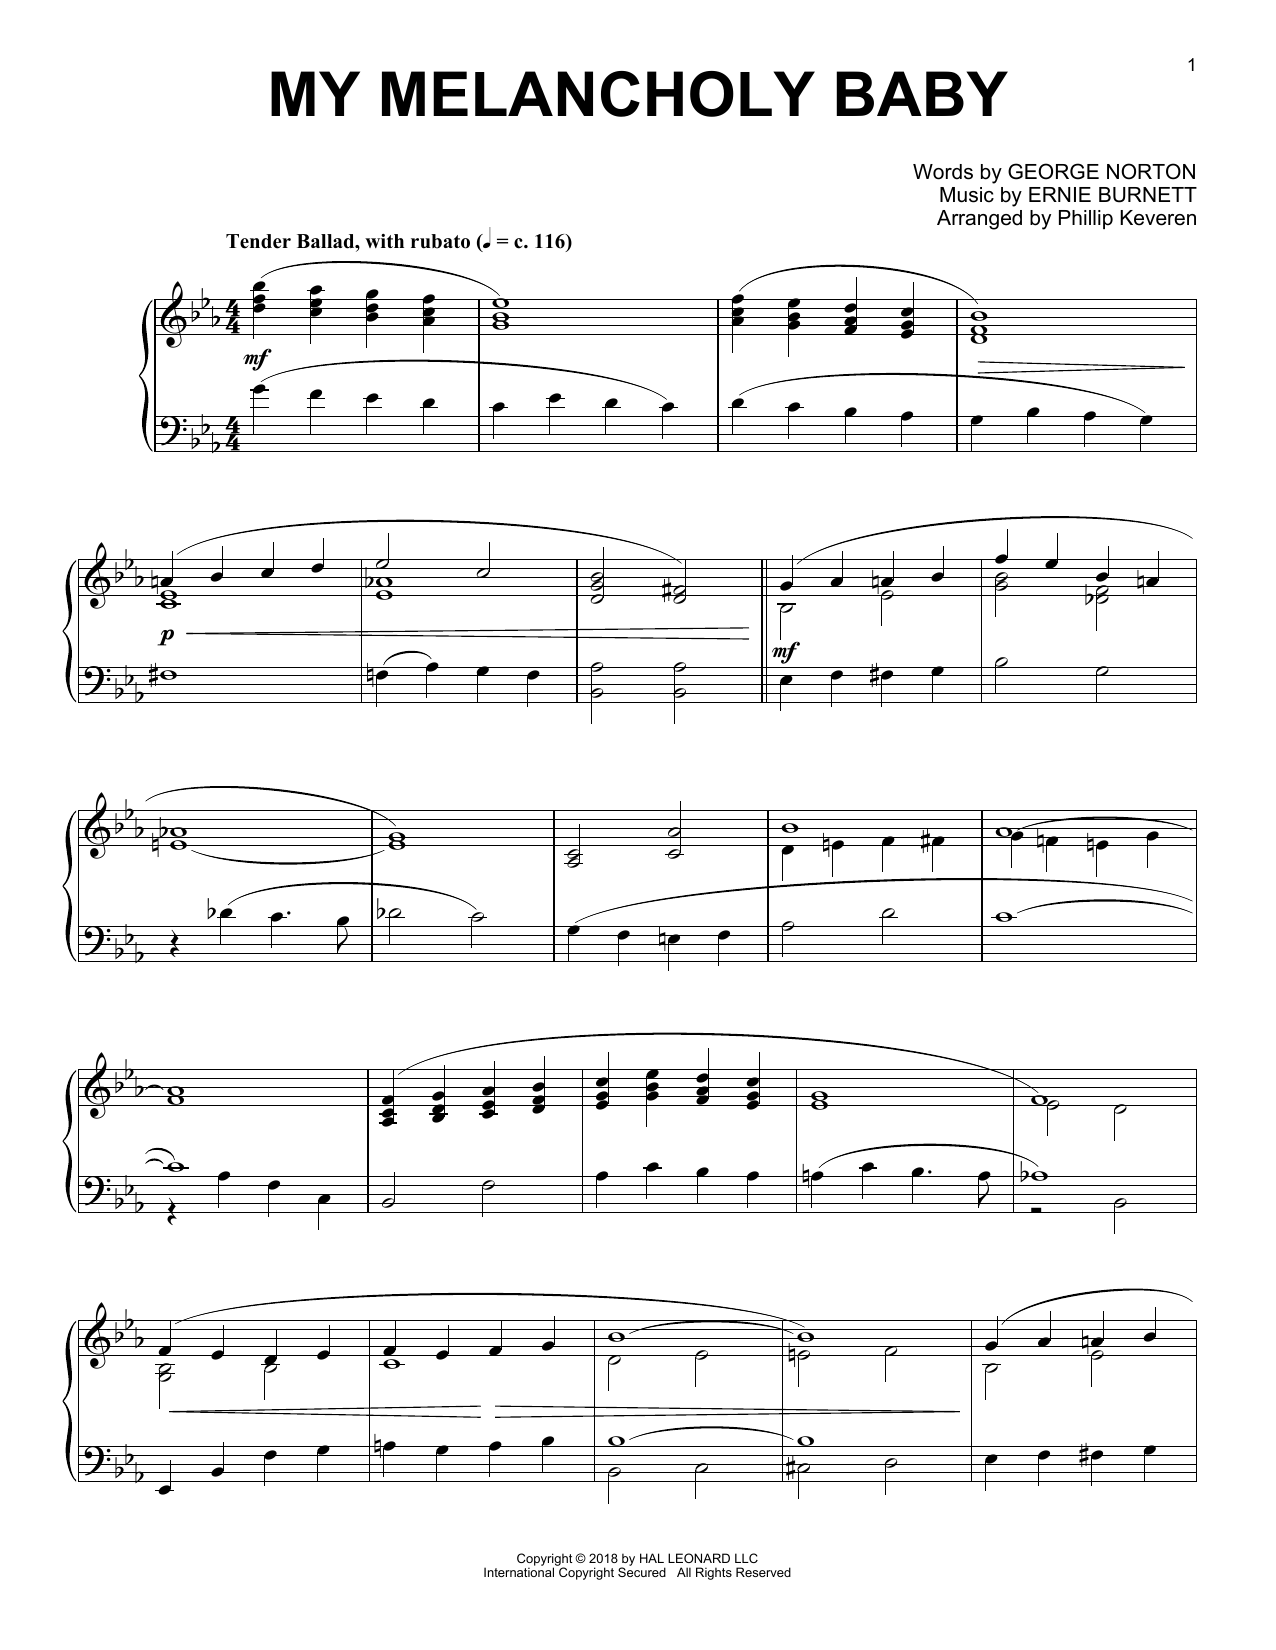 My Melancholy Baby [Jazz version] (arr. Phillip Keveren) (Piano Solo)